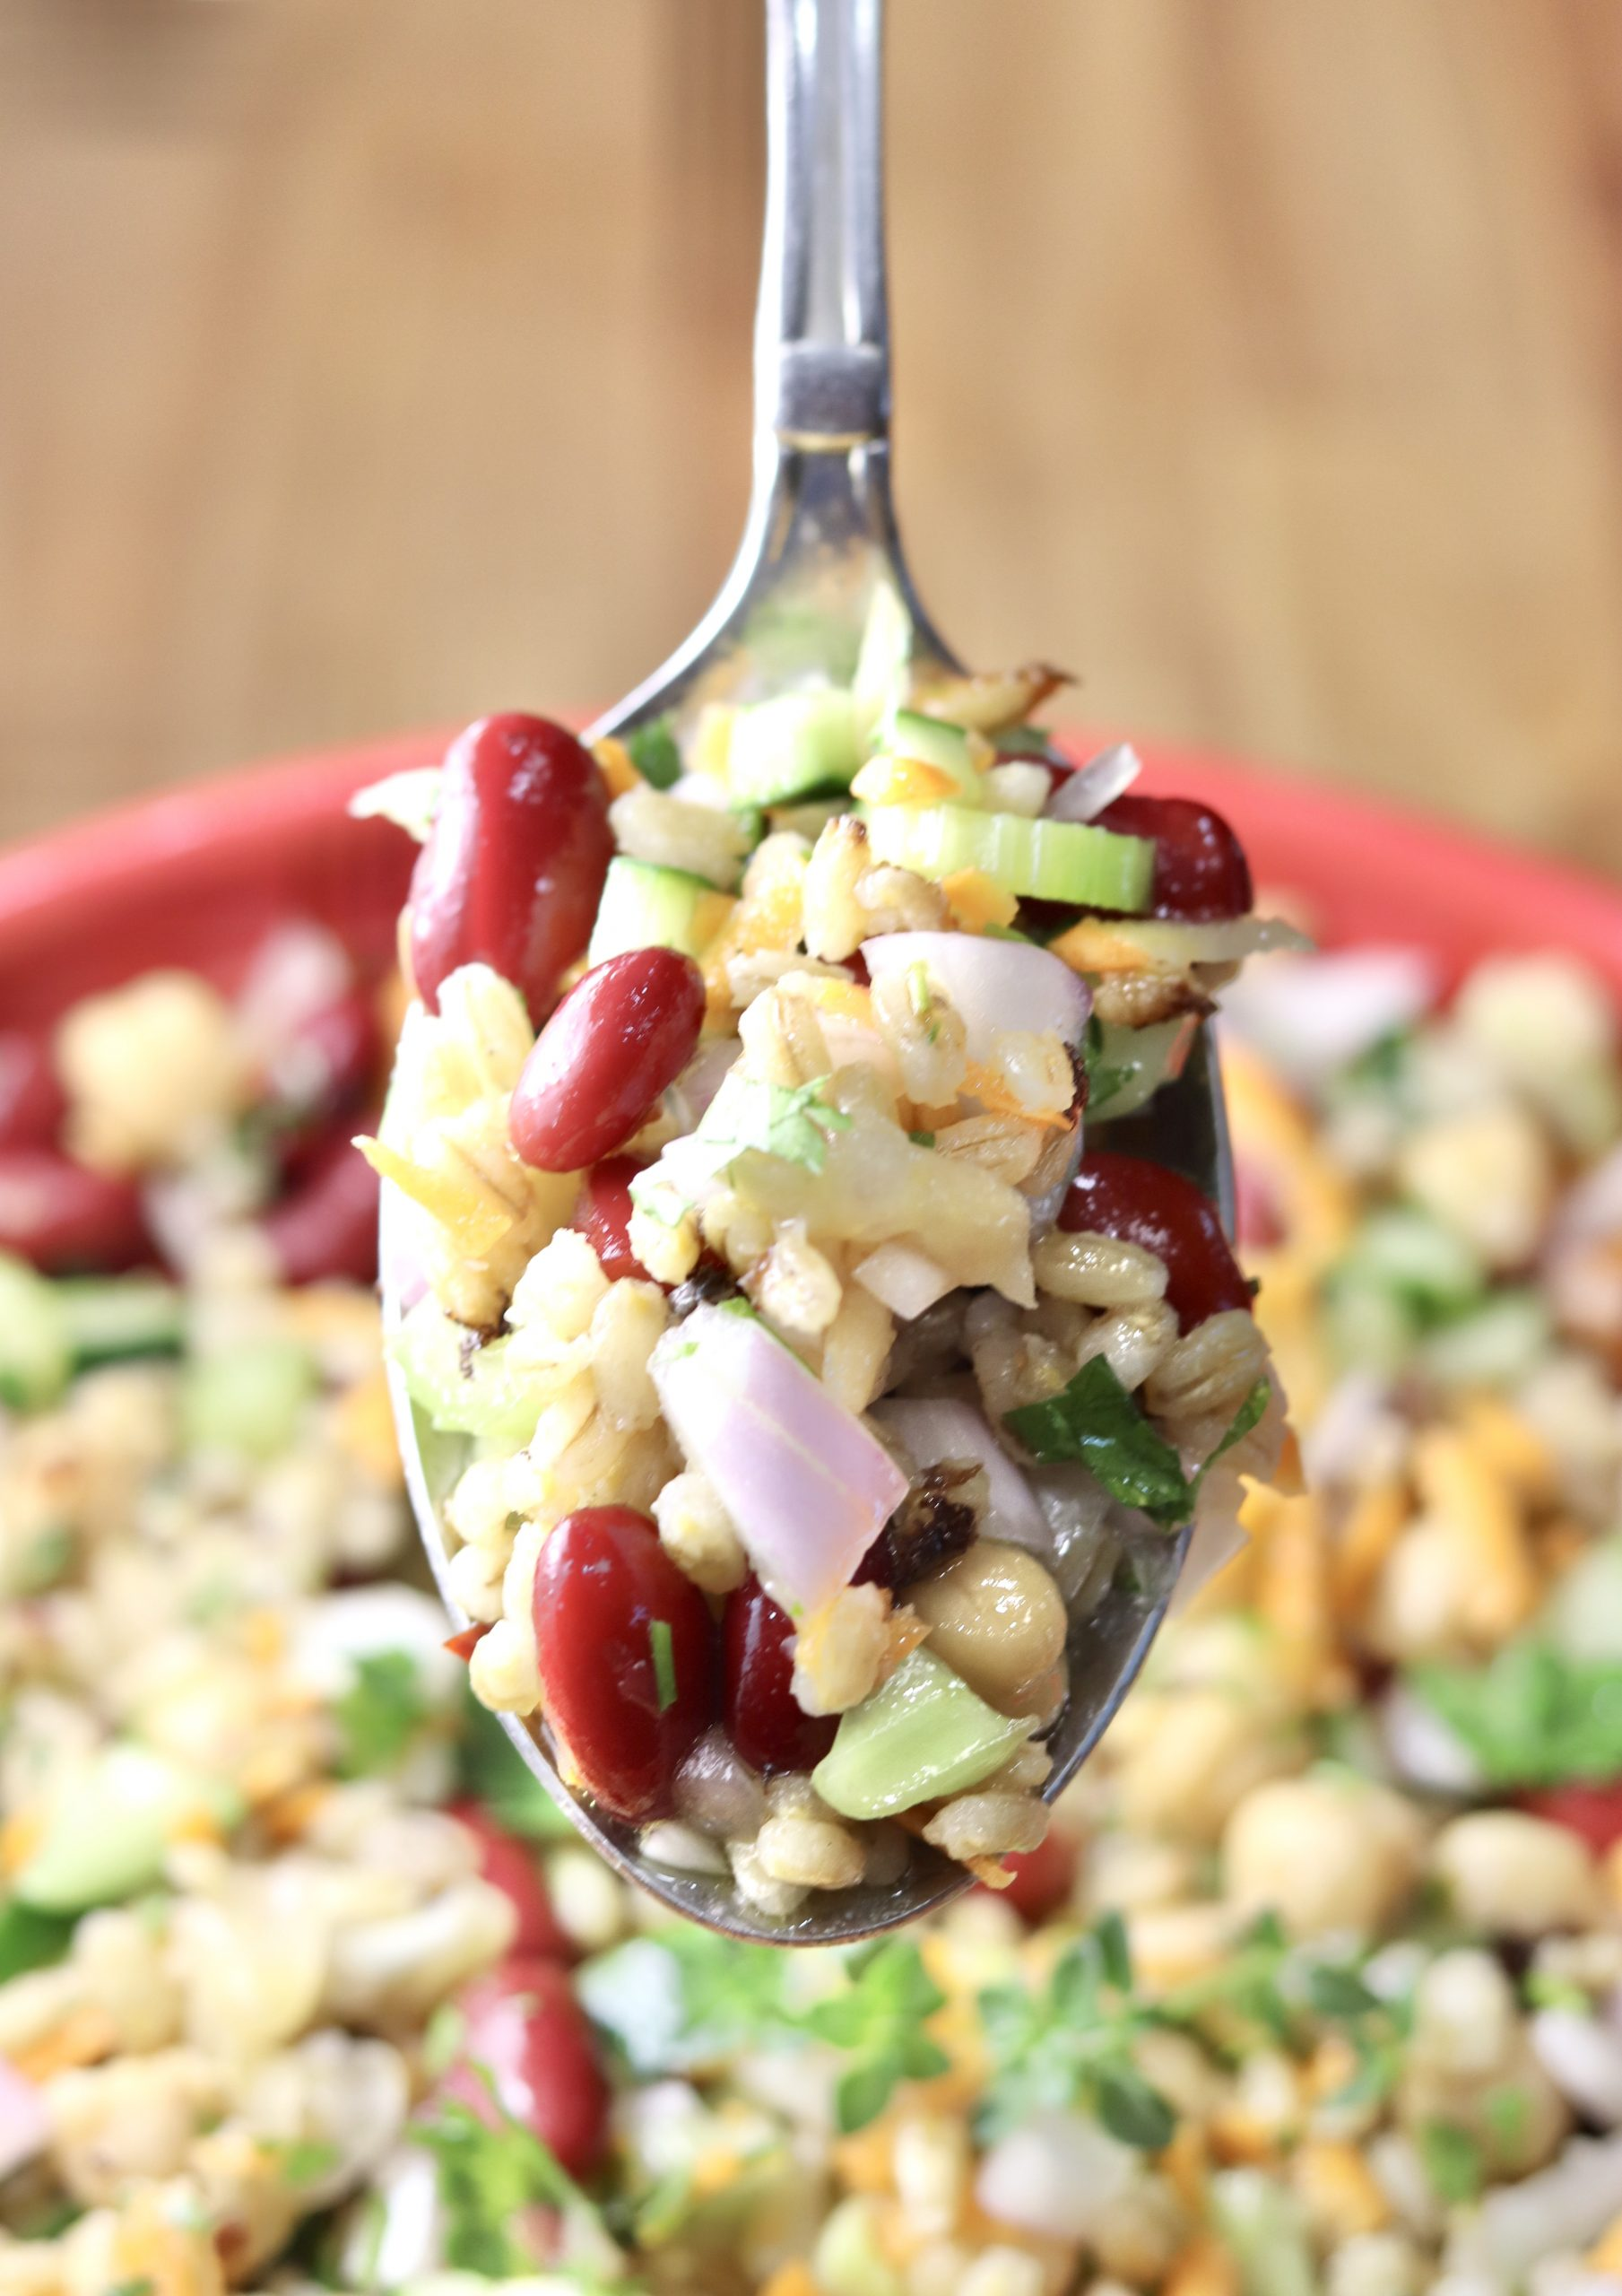 Spoonful of Bean and Barley salad with vegetables